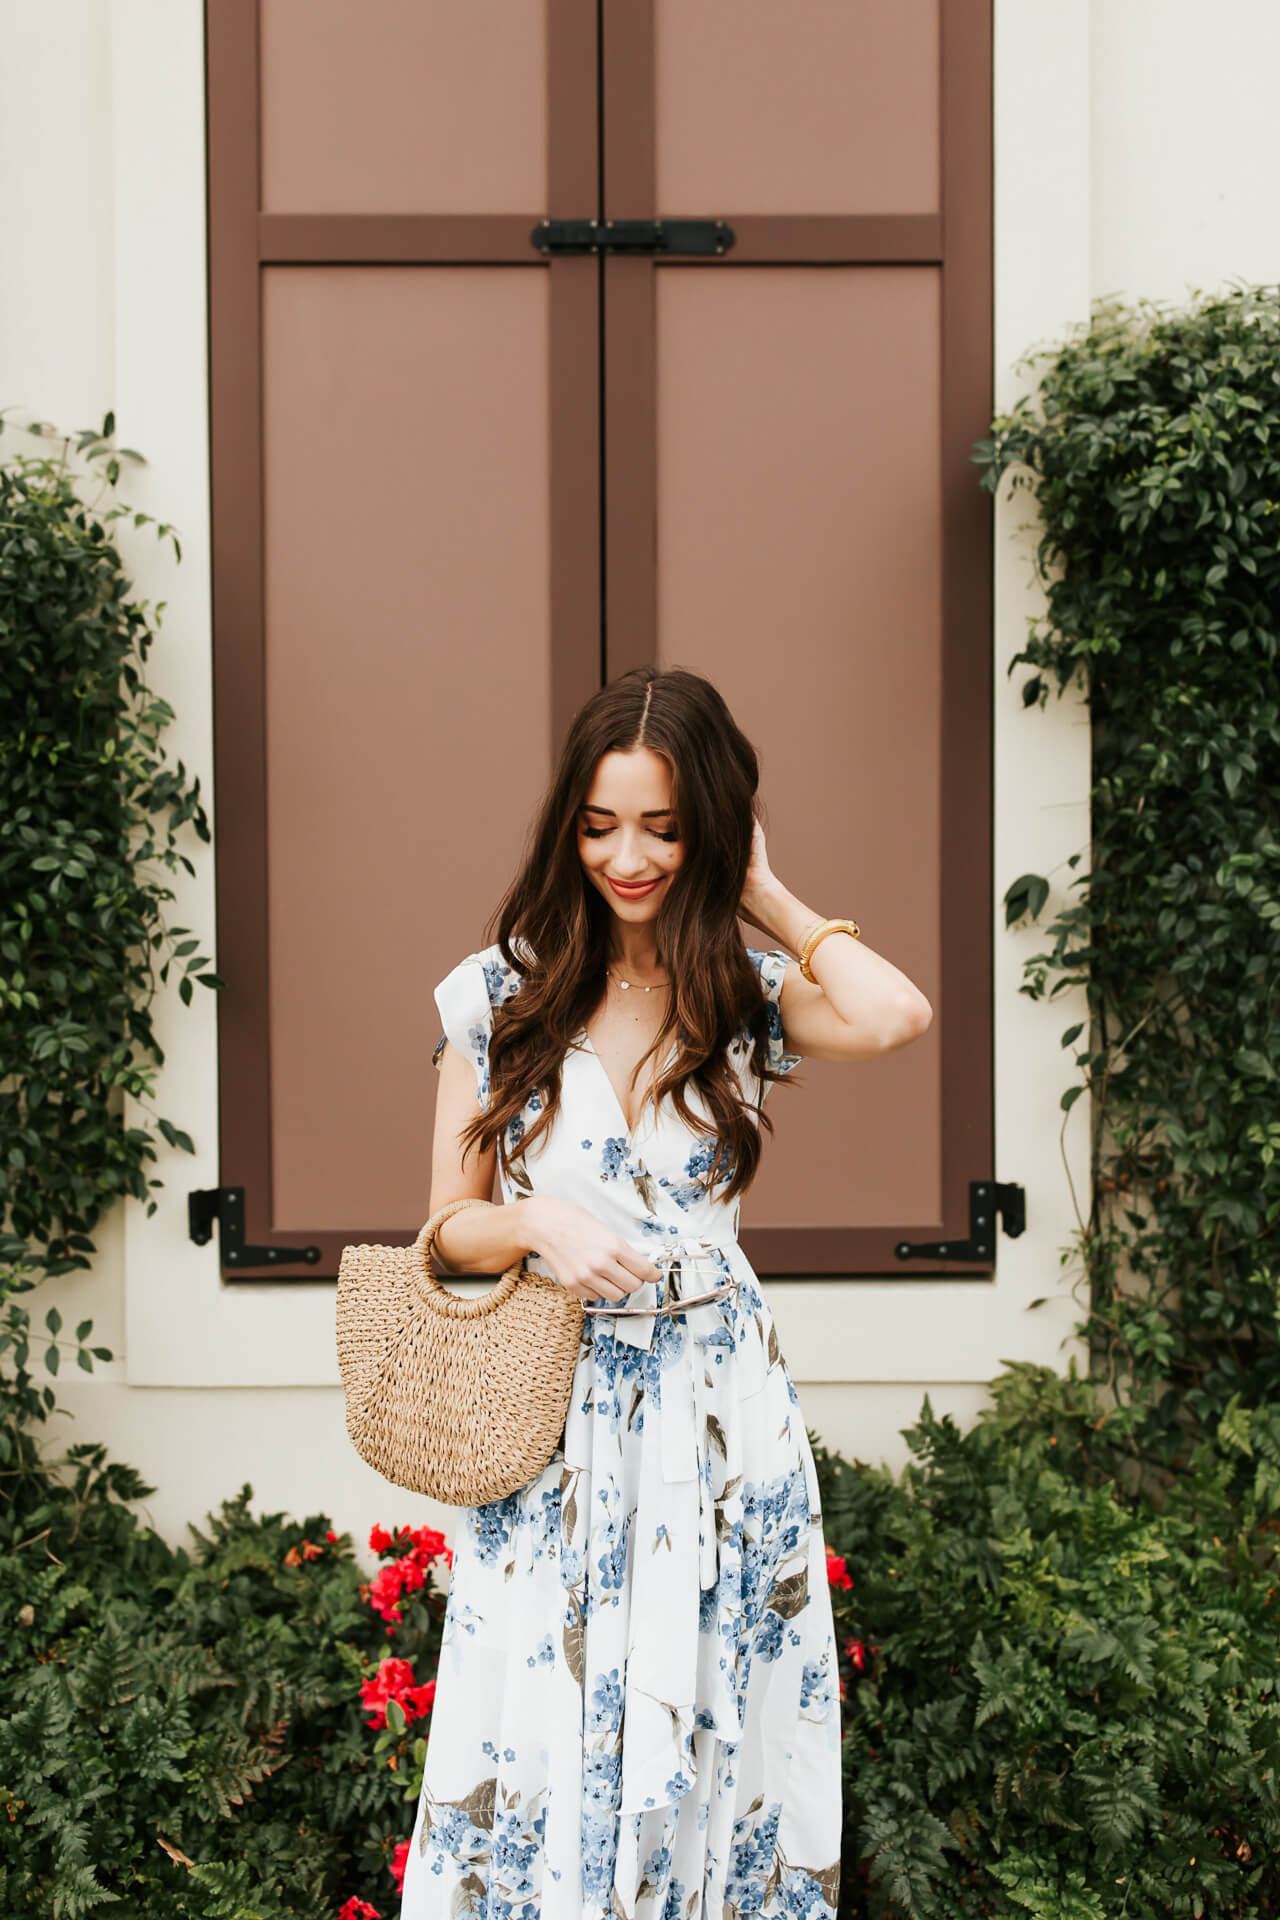 2 Must-Have Dresses for Spring - outfit inspiration for spring from M Loves M @marmar